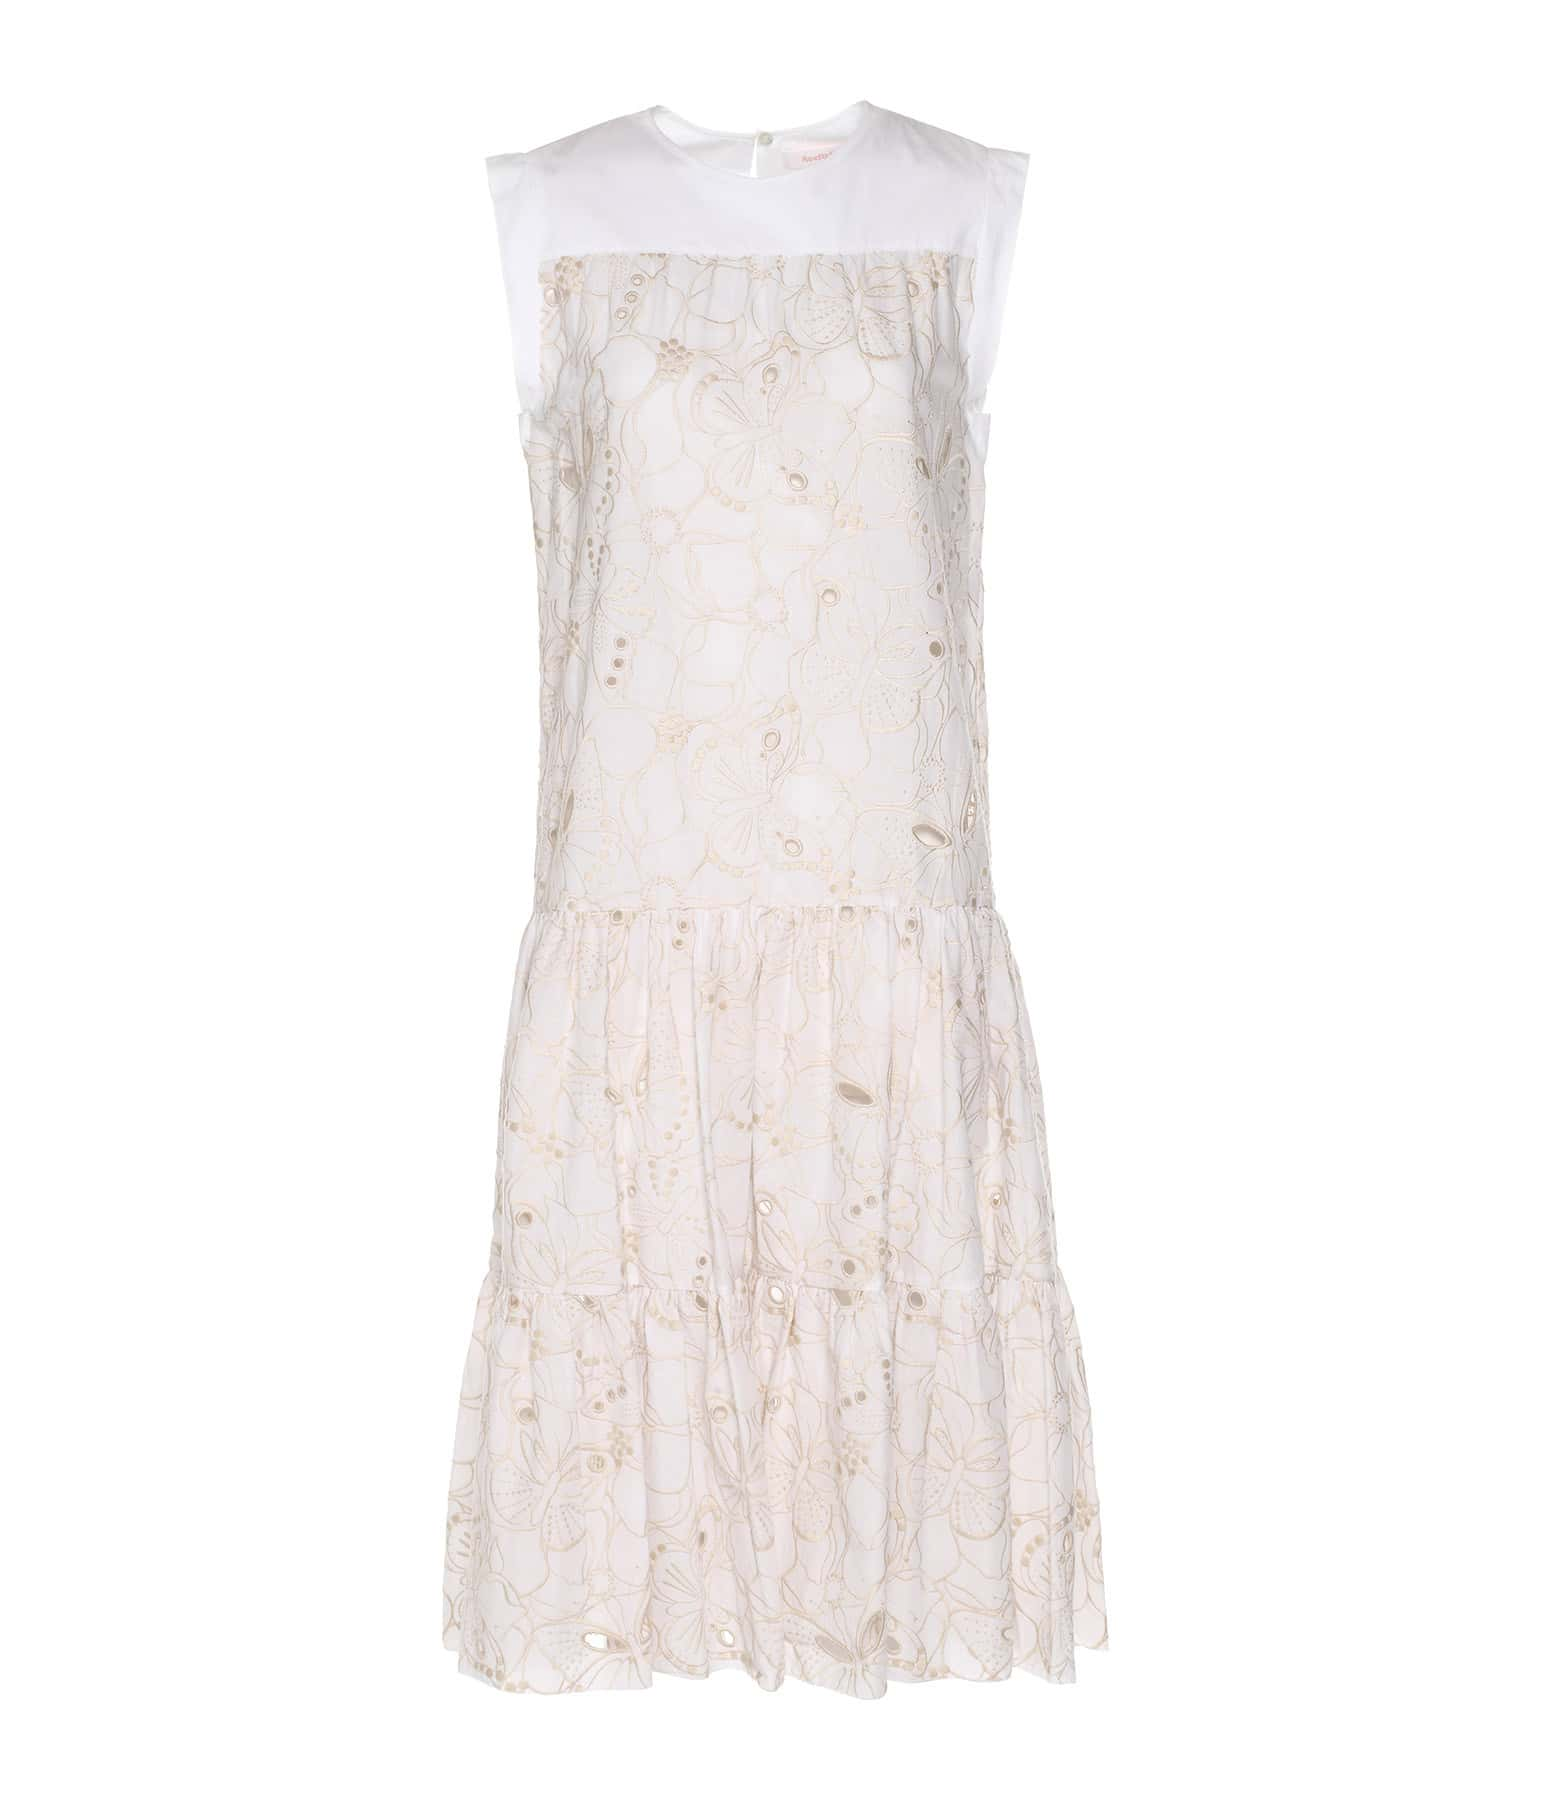 SEE BY CHLOE - Robe Broderie Coton Blanc Beige